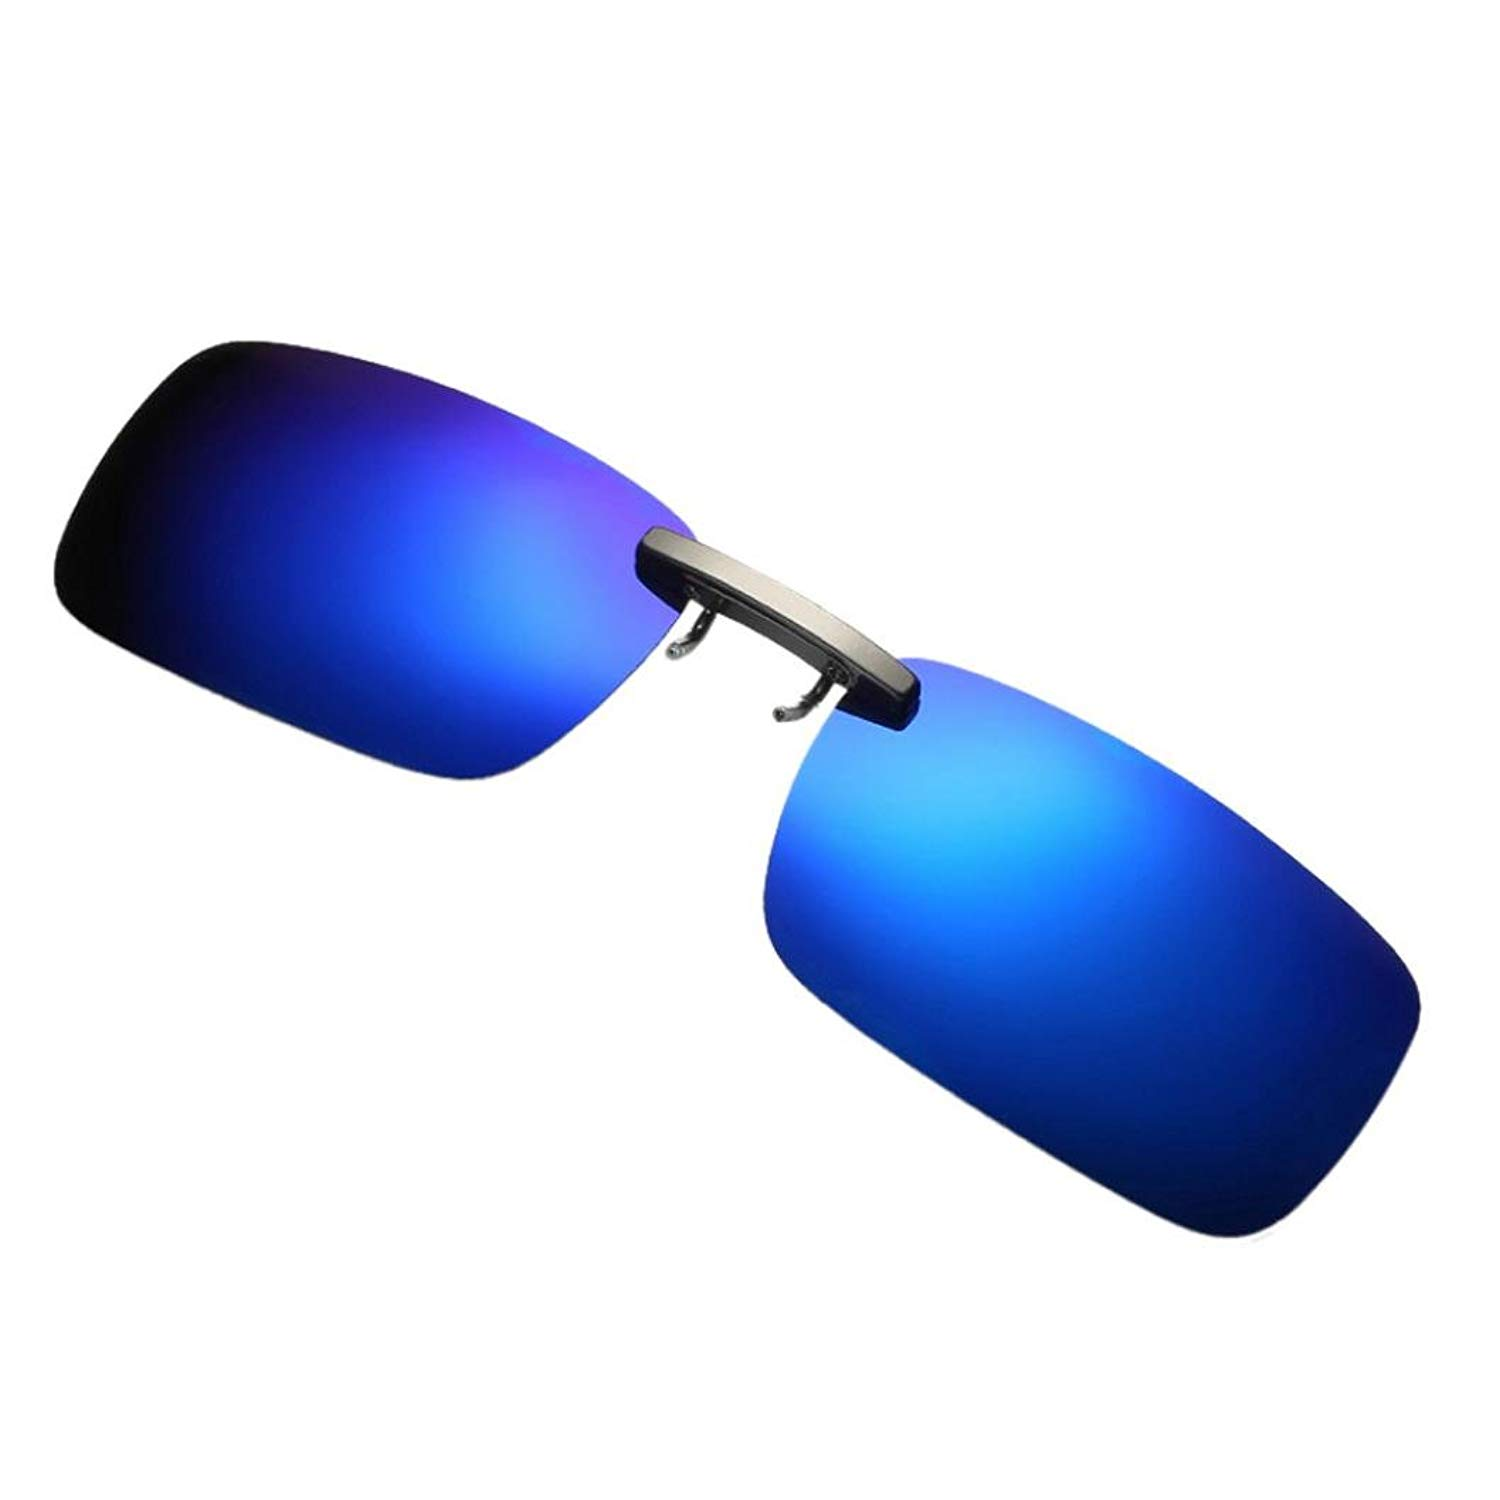 b2d416fcc0 Get Quotations · Perman Clip-on Polarized Sunglasses